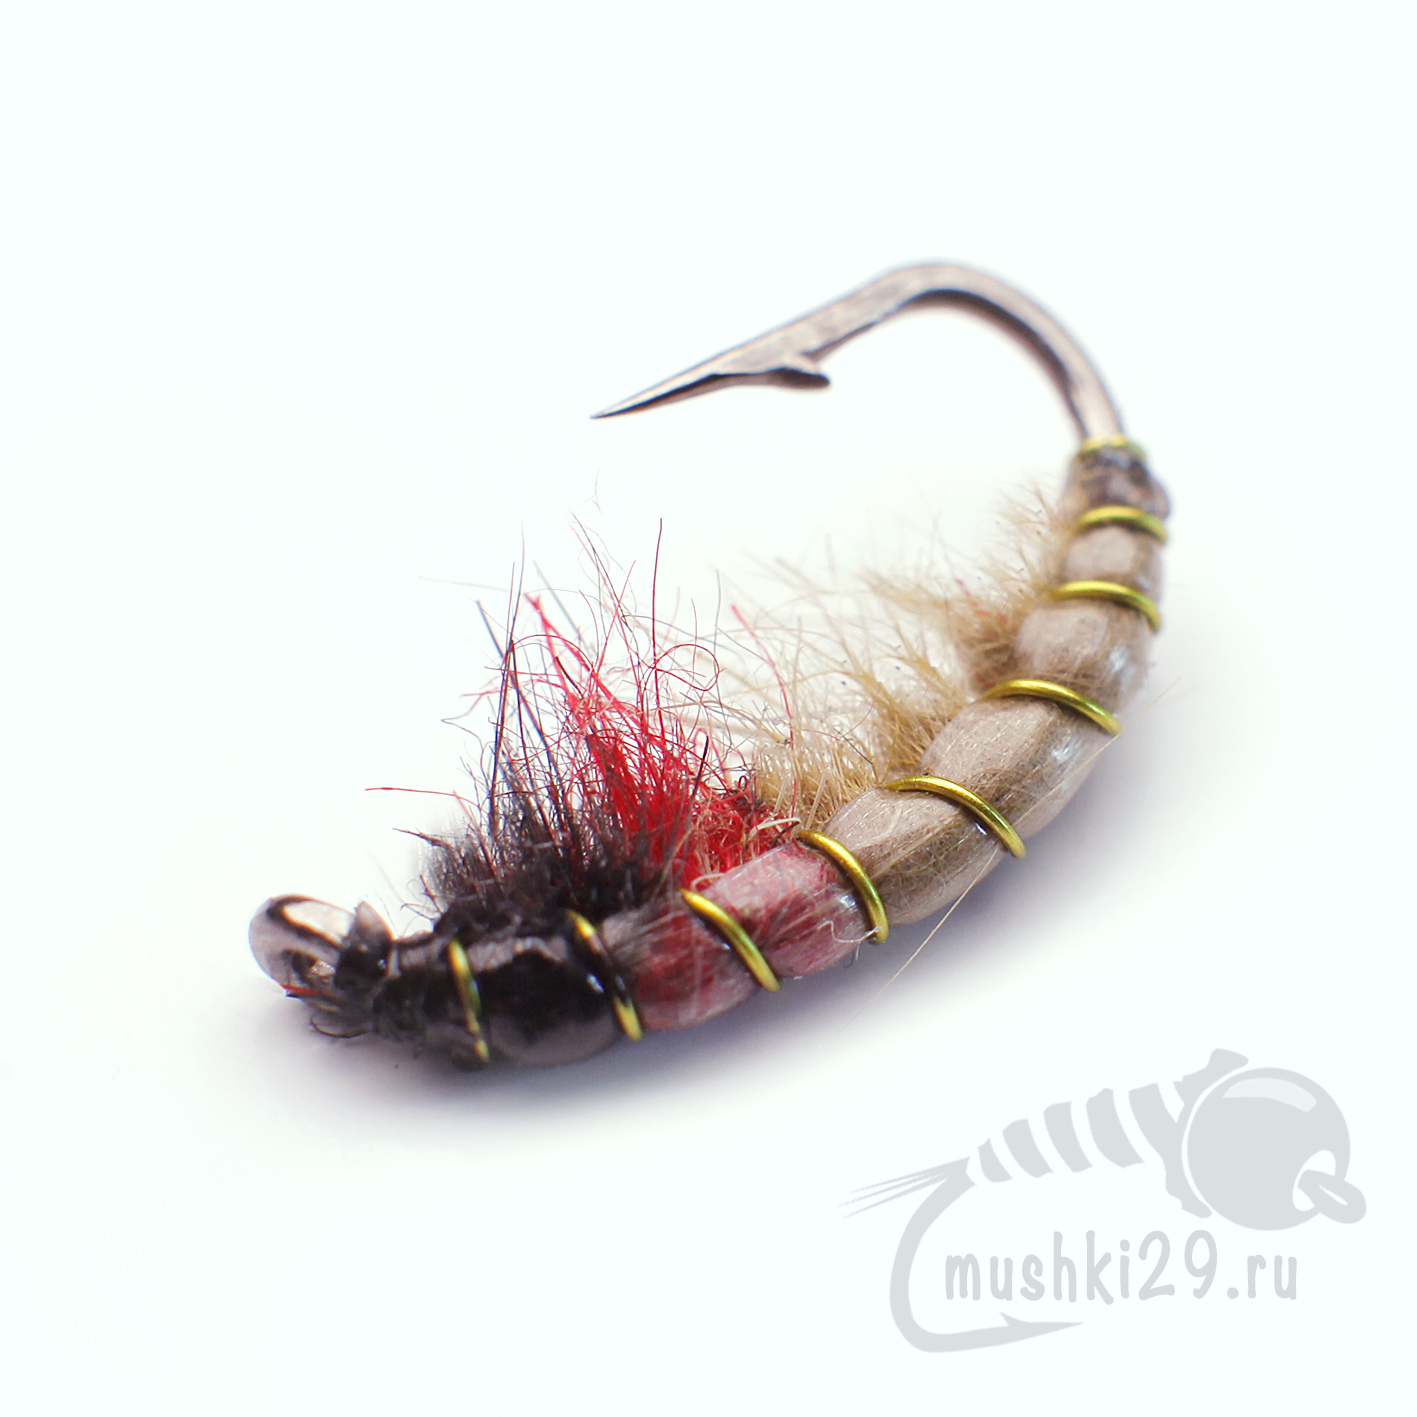 NATURAL OLIVE CZECH NYMPH